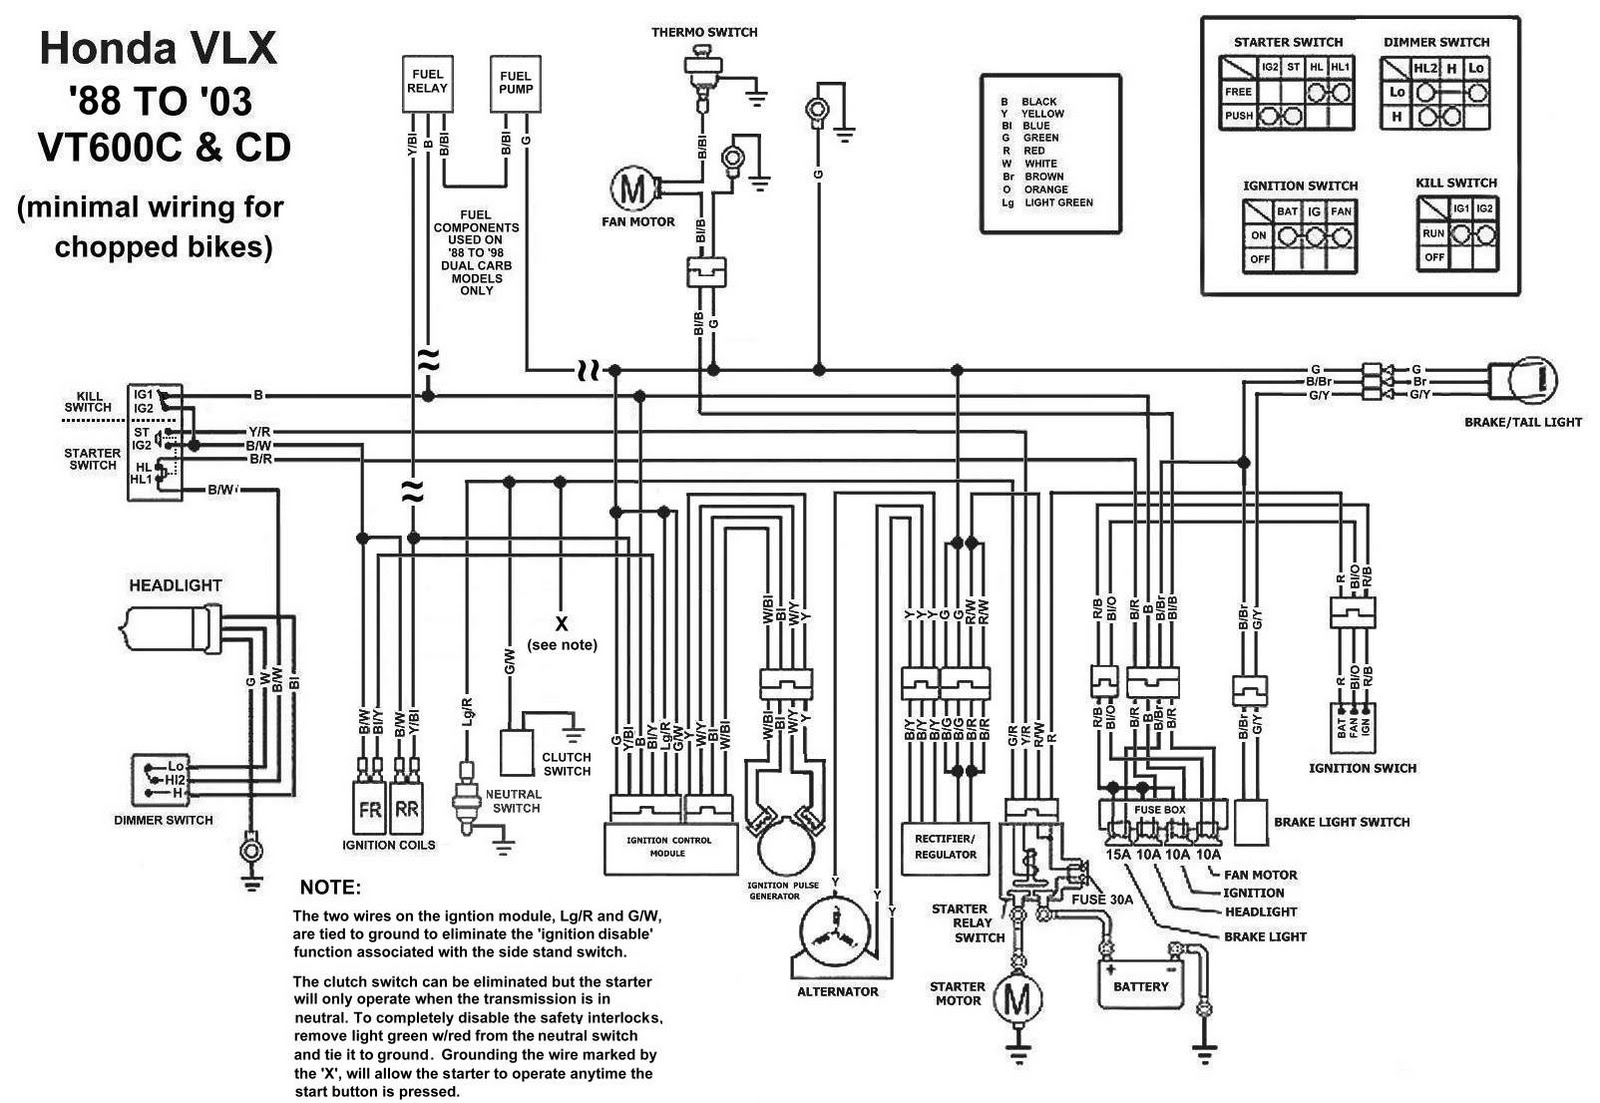 Honda Shadow 750 Wiring Diagram http://tommyjeanbrutalcustoms.blogspot.com/2011/09/honda-shadow-vt600cd-chopped-wiring.html